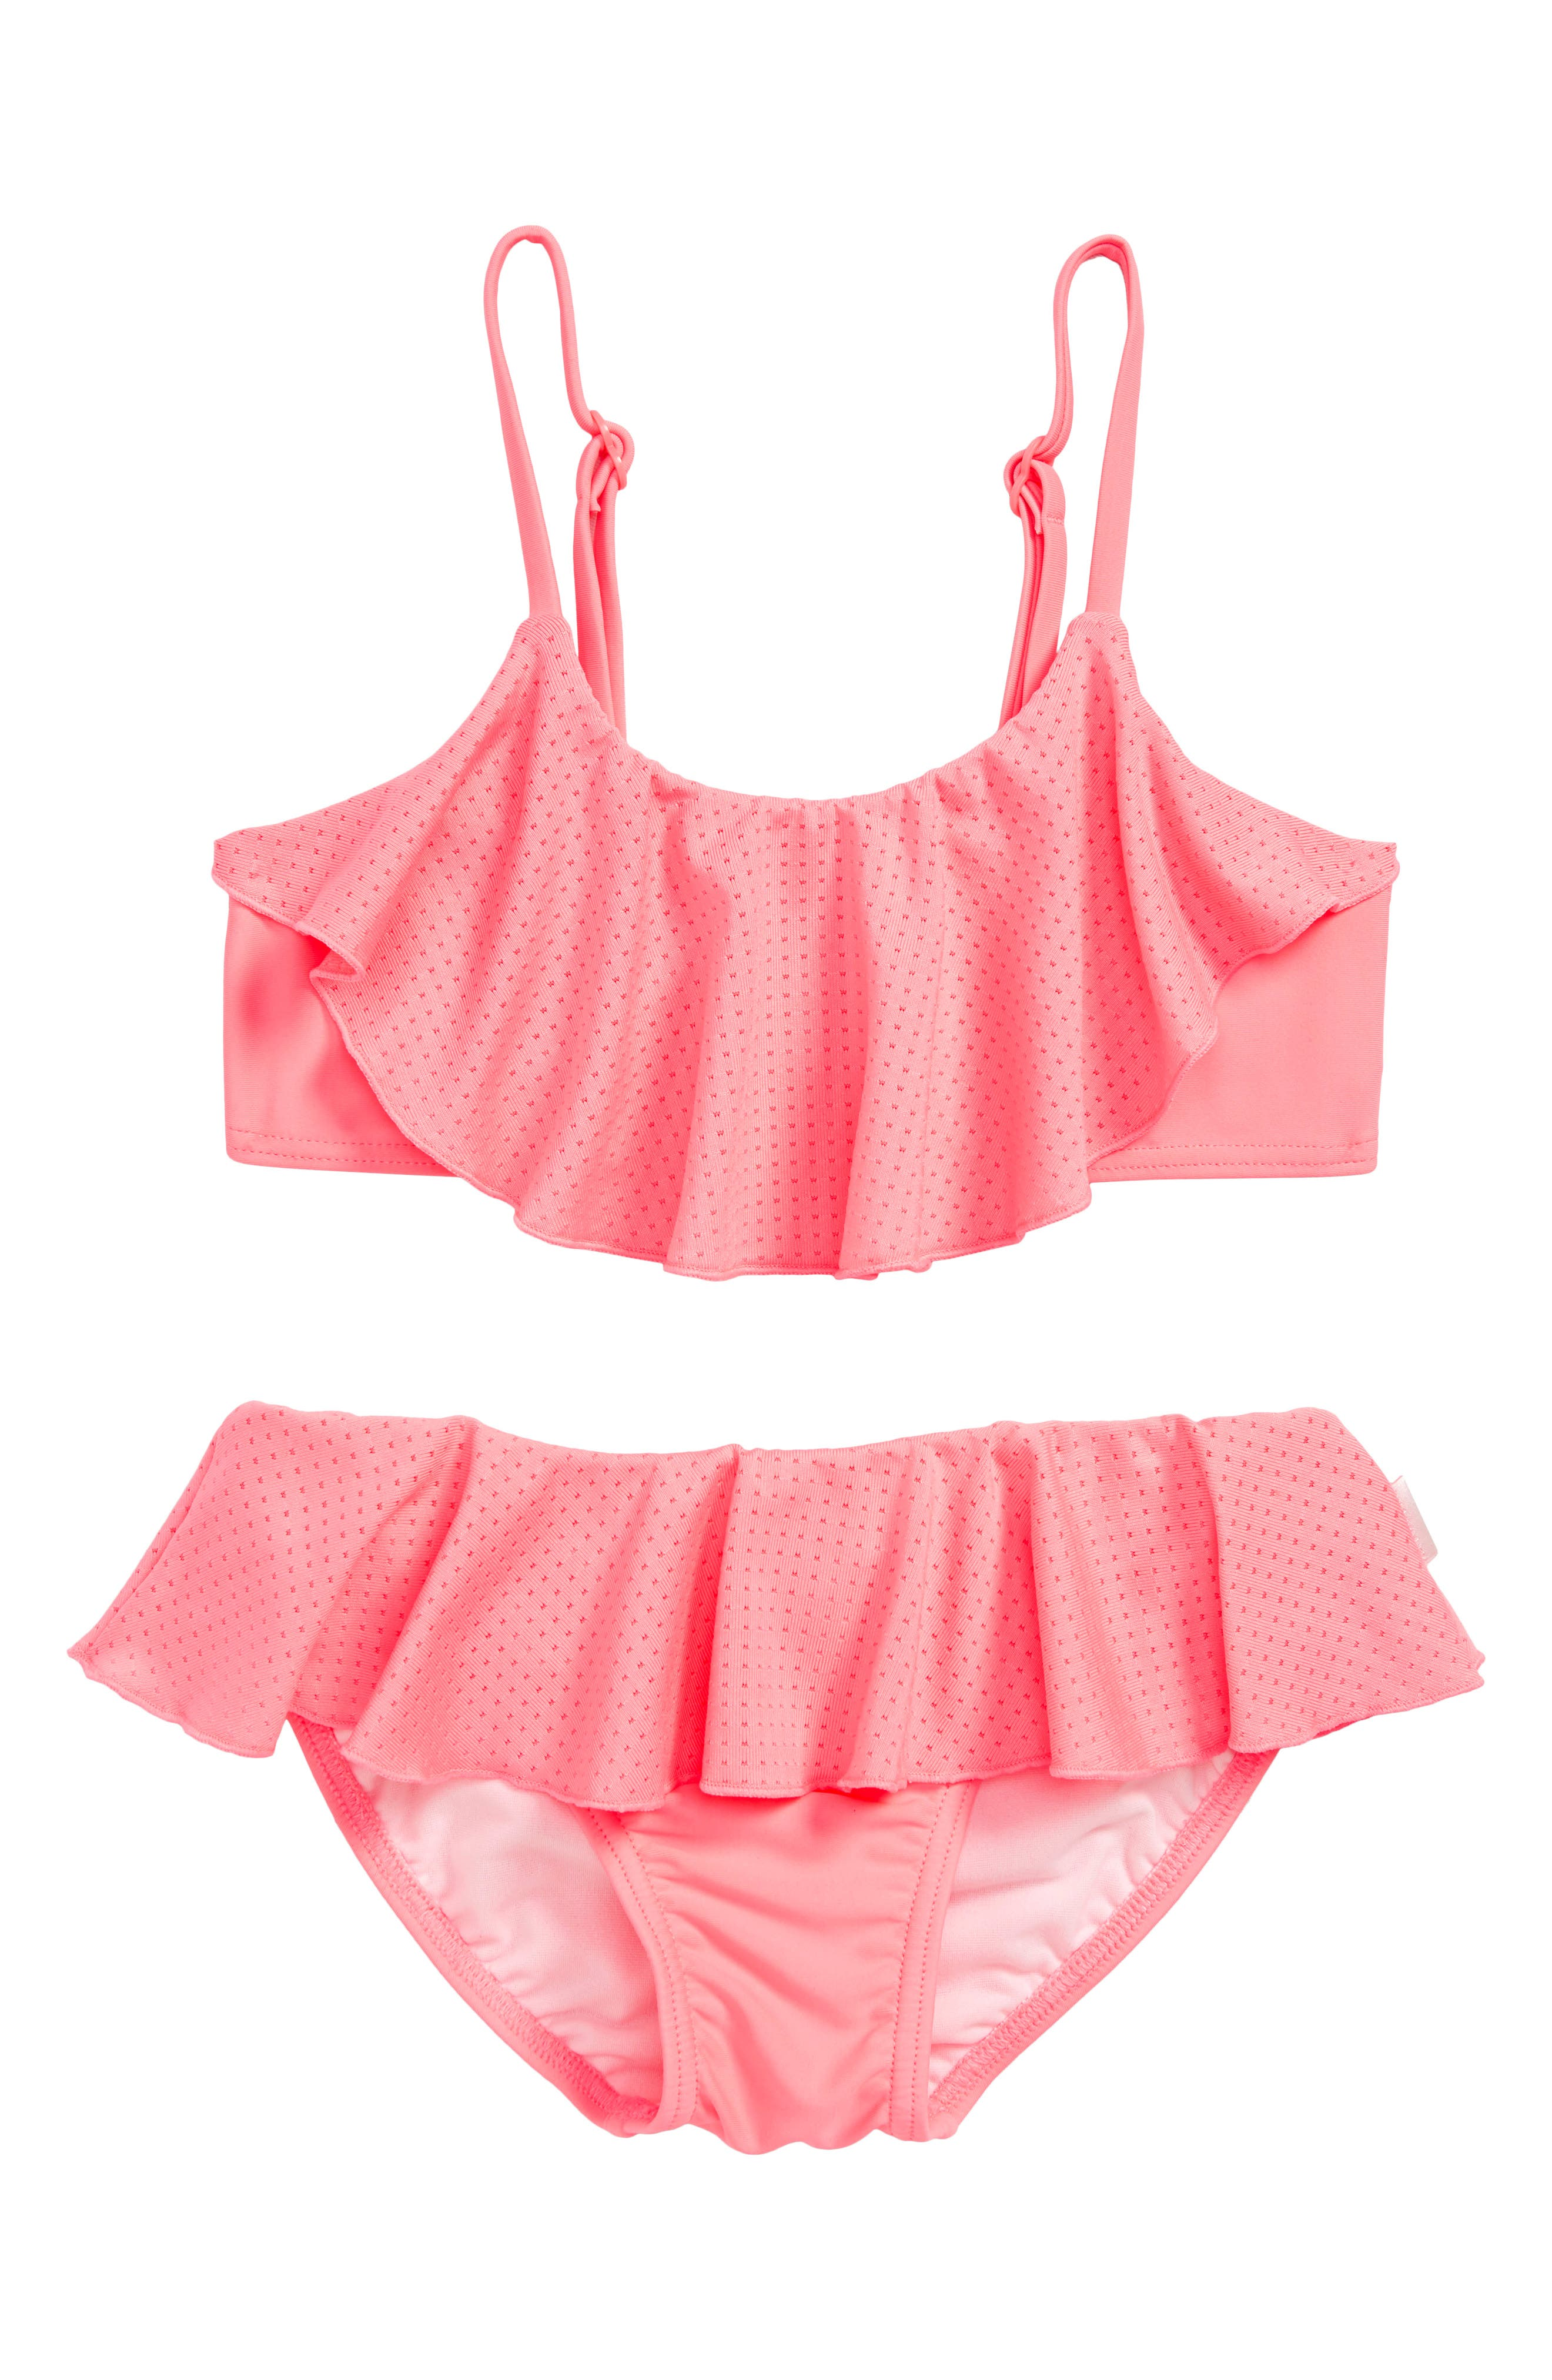 Ruffle Two-Piece Swimsuit,                             Main thumbnail 1, color,                             STRAWBERRY PINK